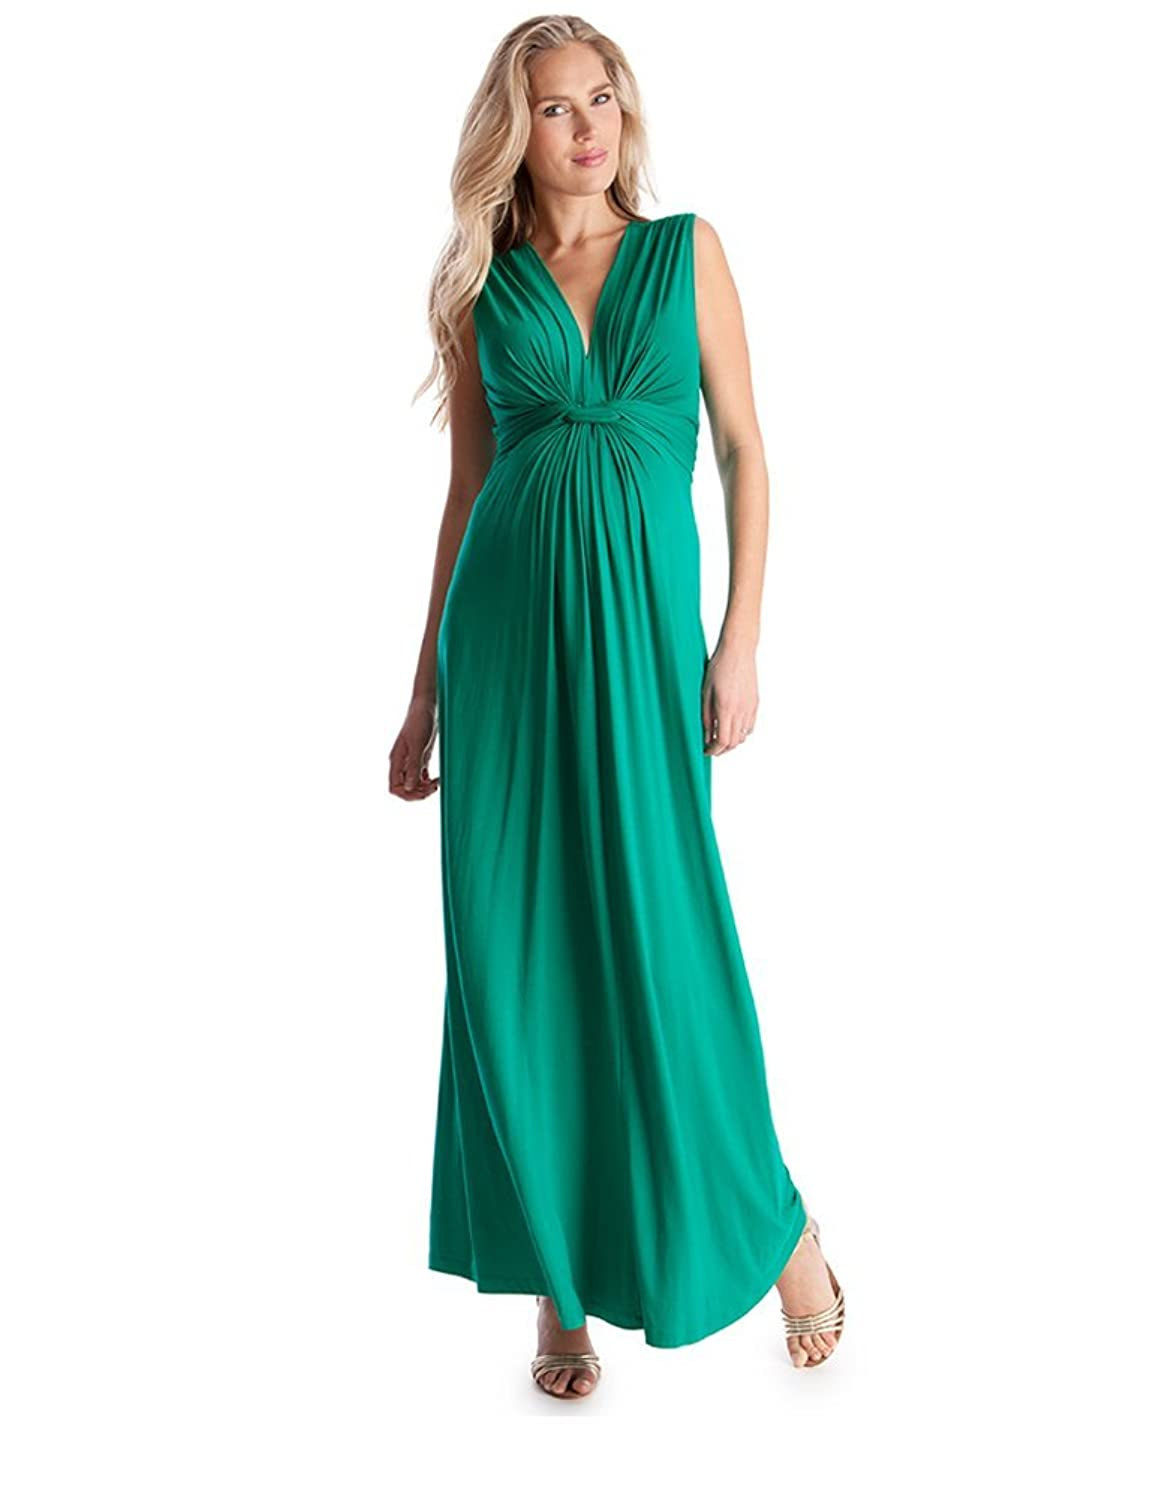 Emerald Knot Front Maternity Maxi Dress at Amazon Women\'s Clothing ...